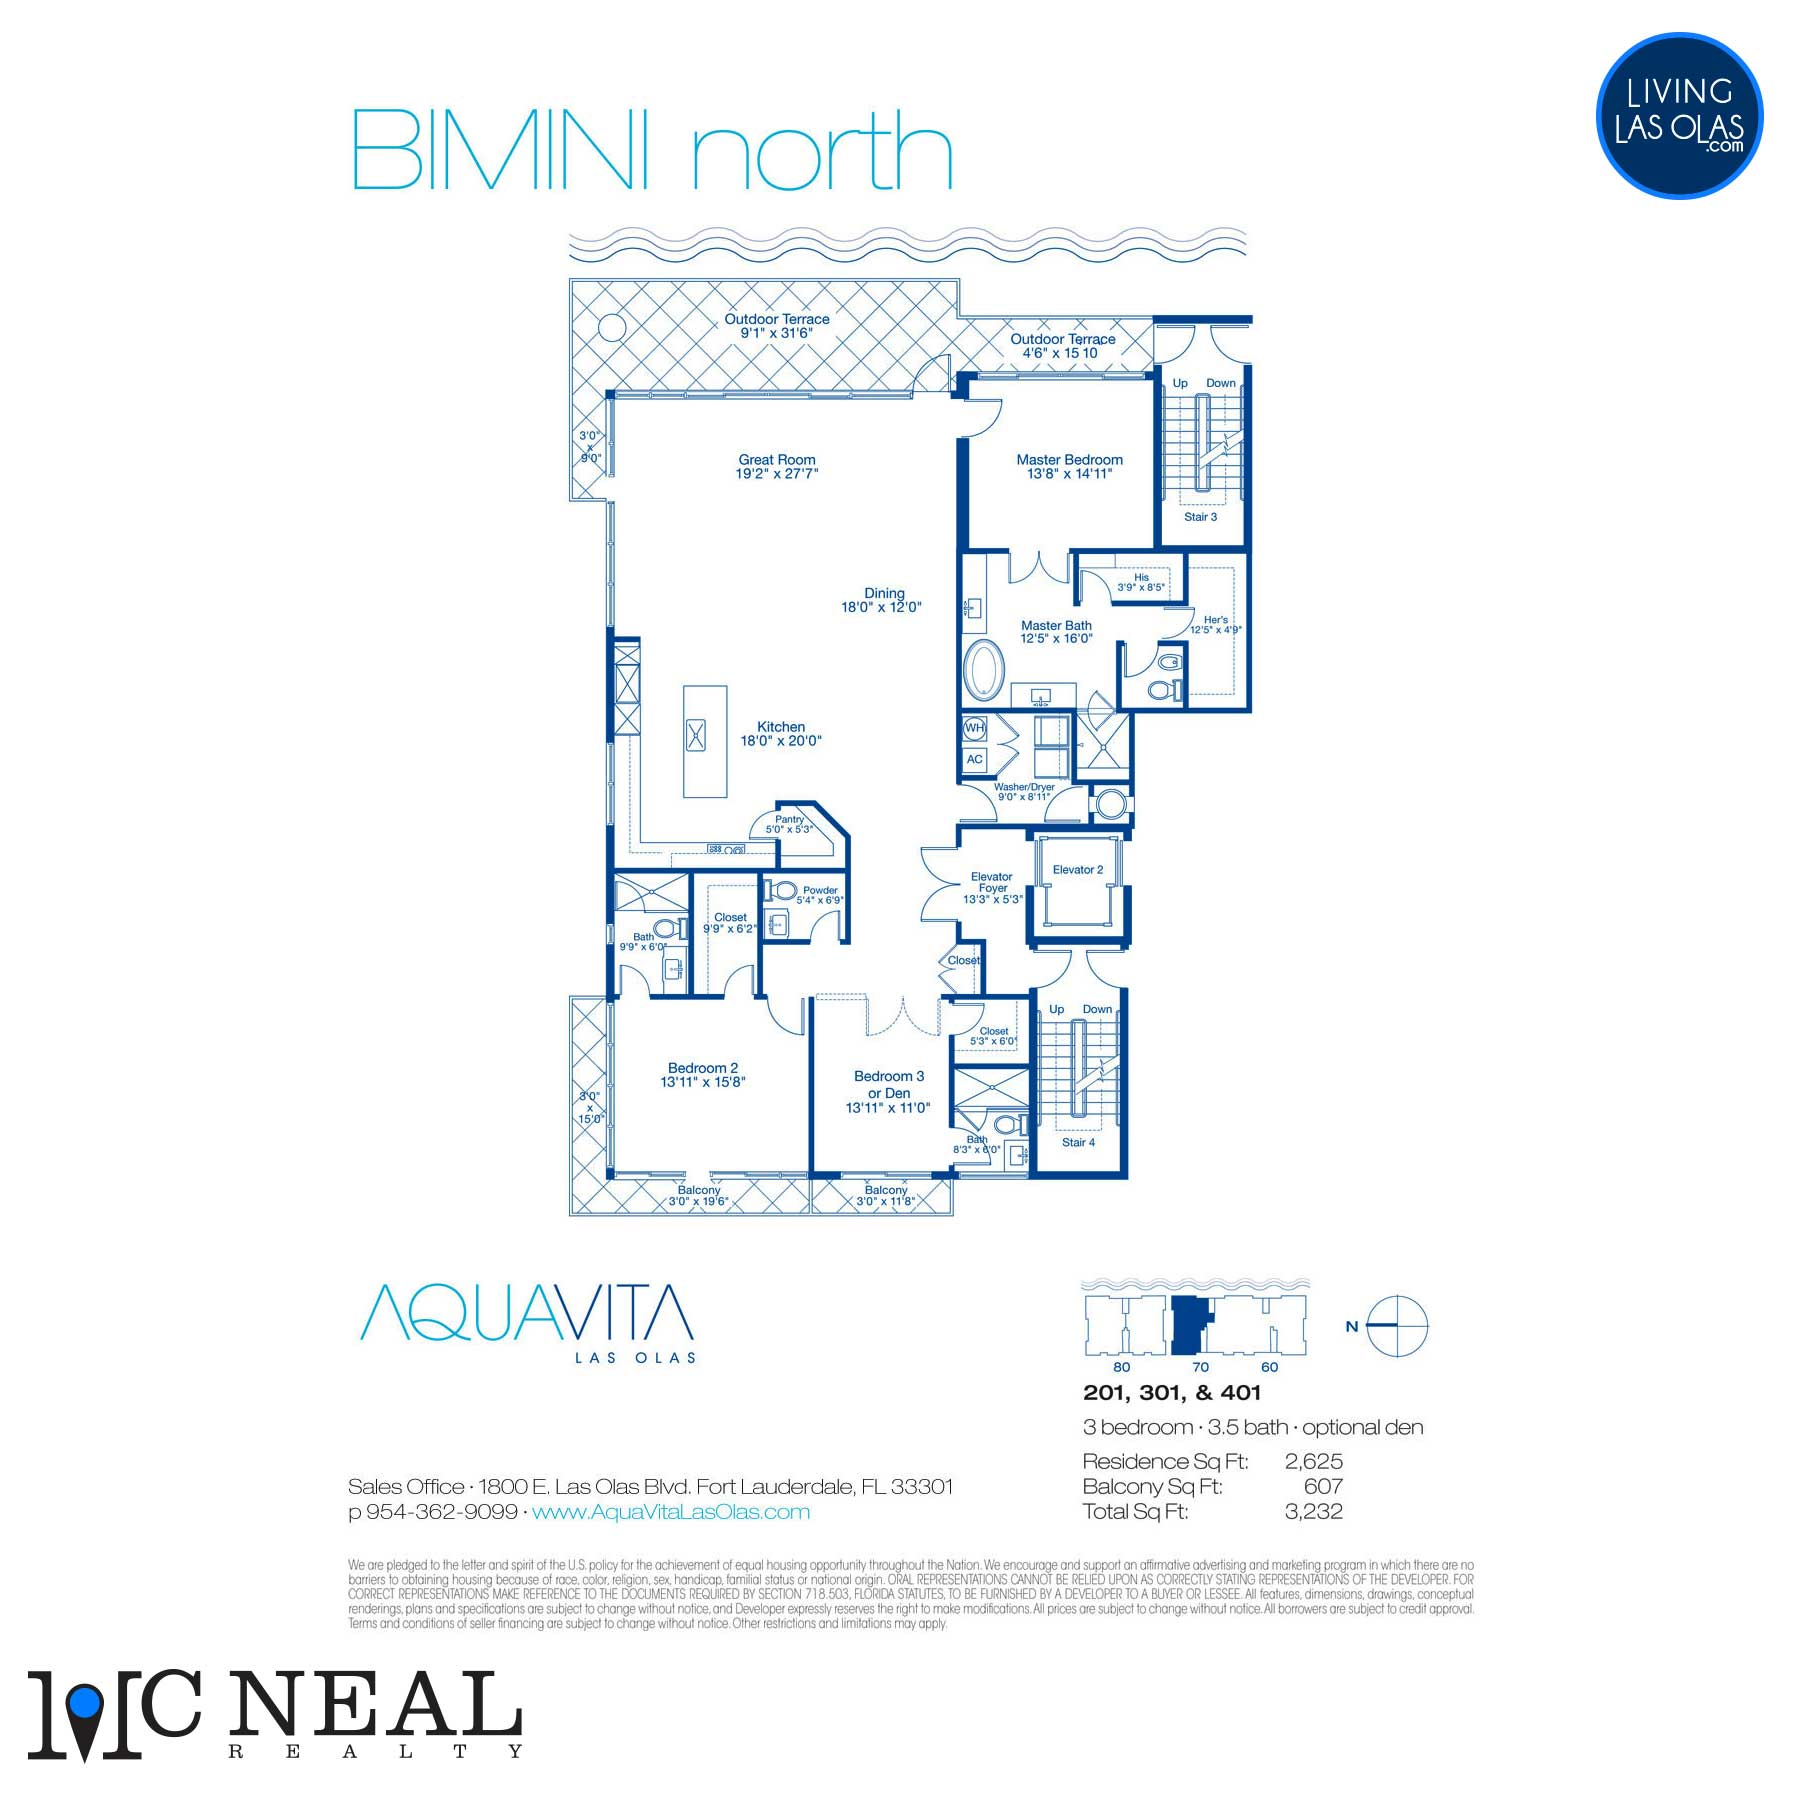 AquaVita Las Olas Floor Plans Bimini N